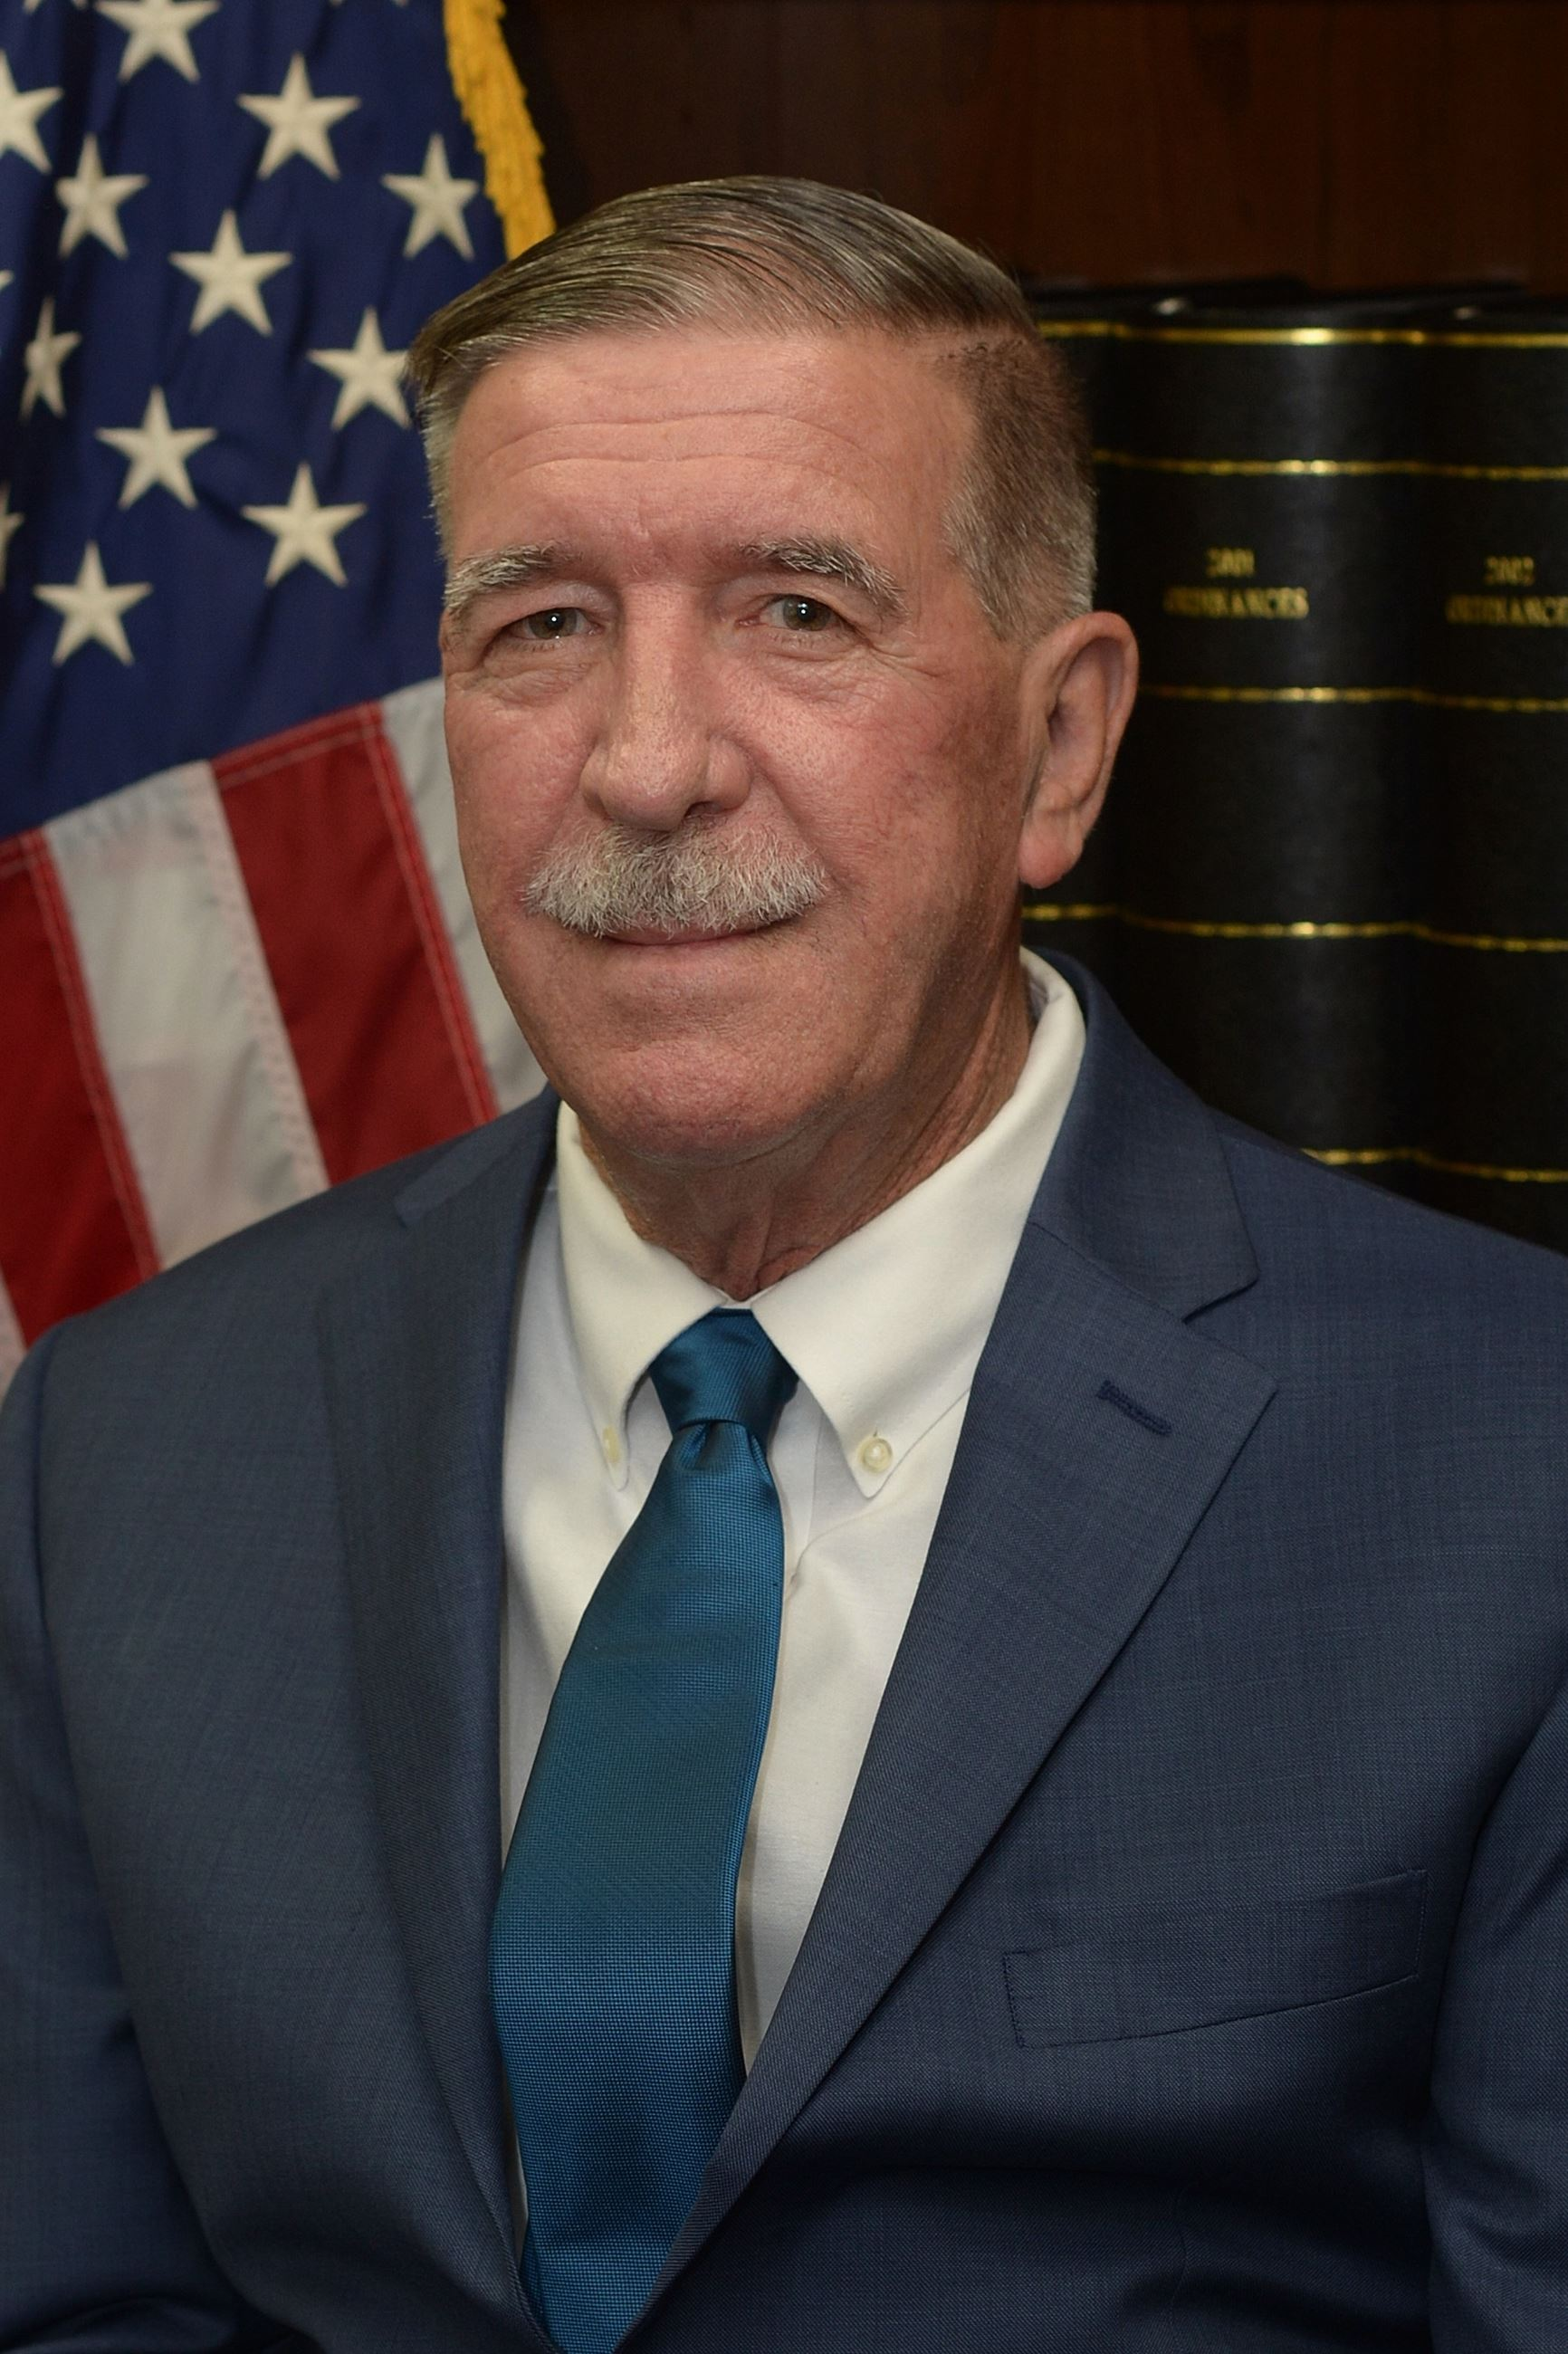 Headshot of a man with grey hair wearing a suit in front of an American flag and law books